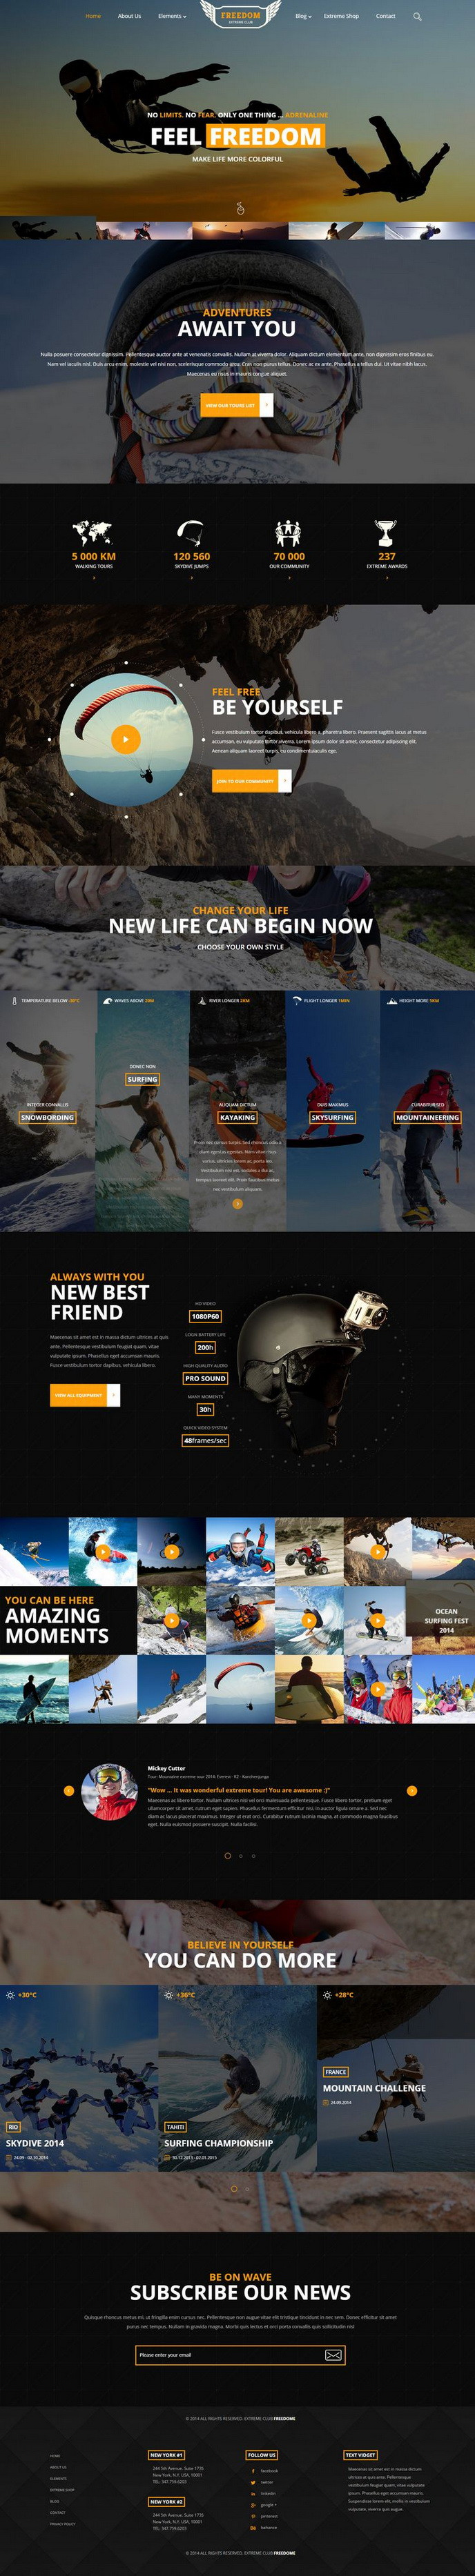 Web design inspiration (2)